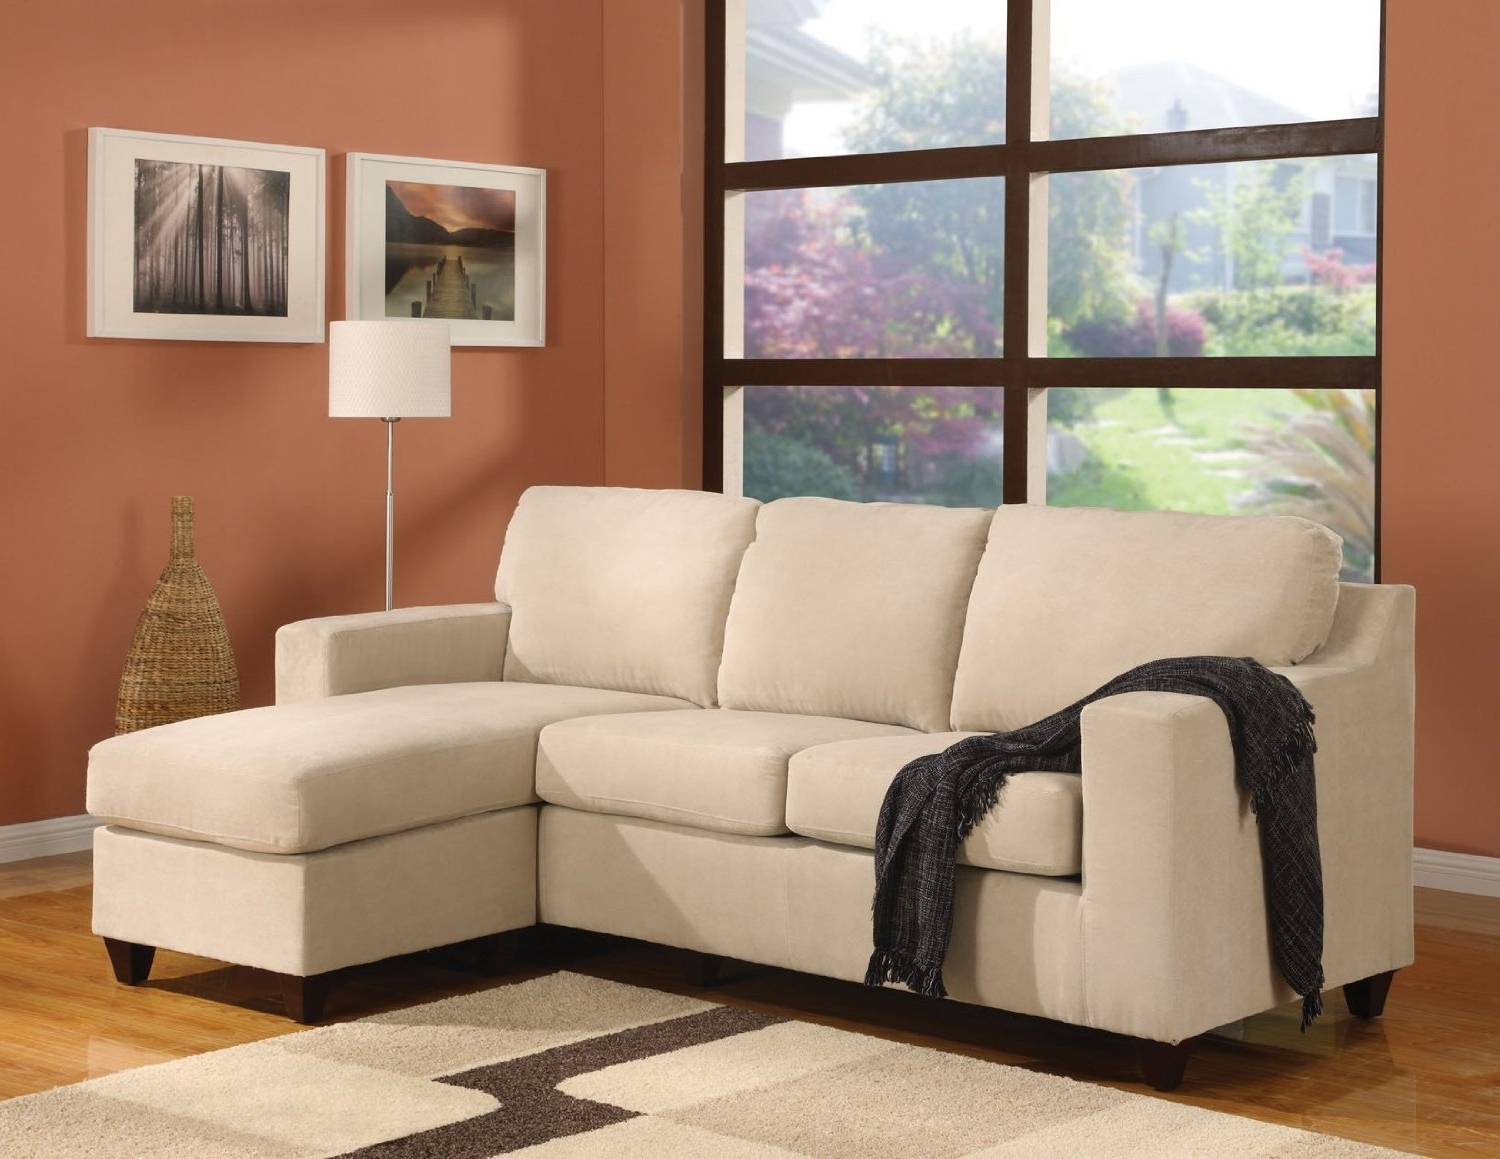 Small Sectional Sofas With Chaise And Ottoman With Widely Used Awesome Small Sectional Sofa With Chaise Lounge Chairs (View 12 of 15)